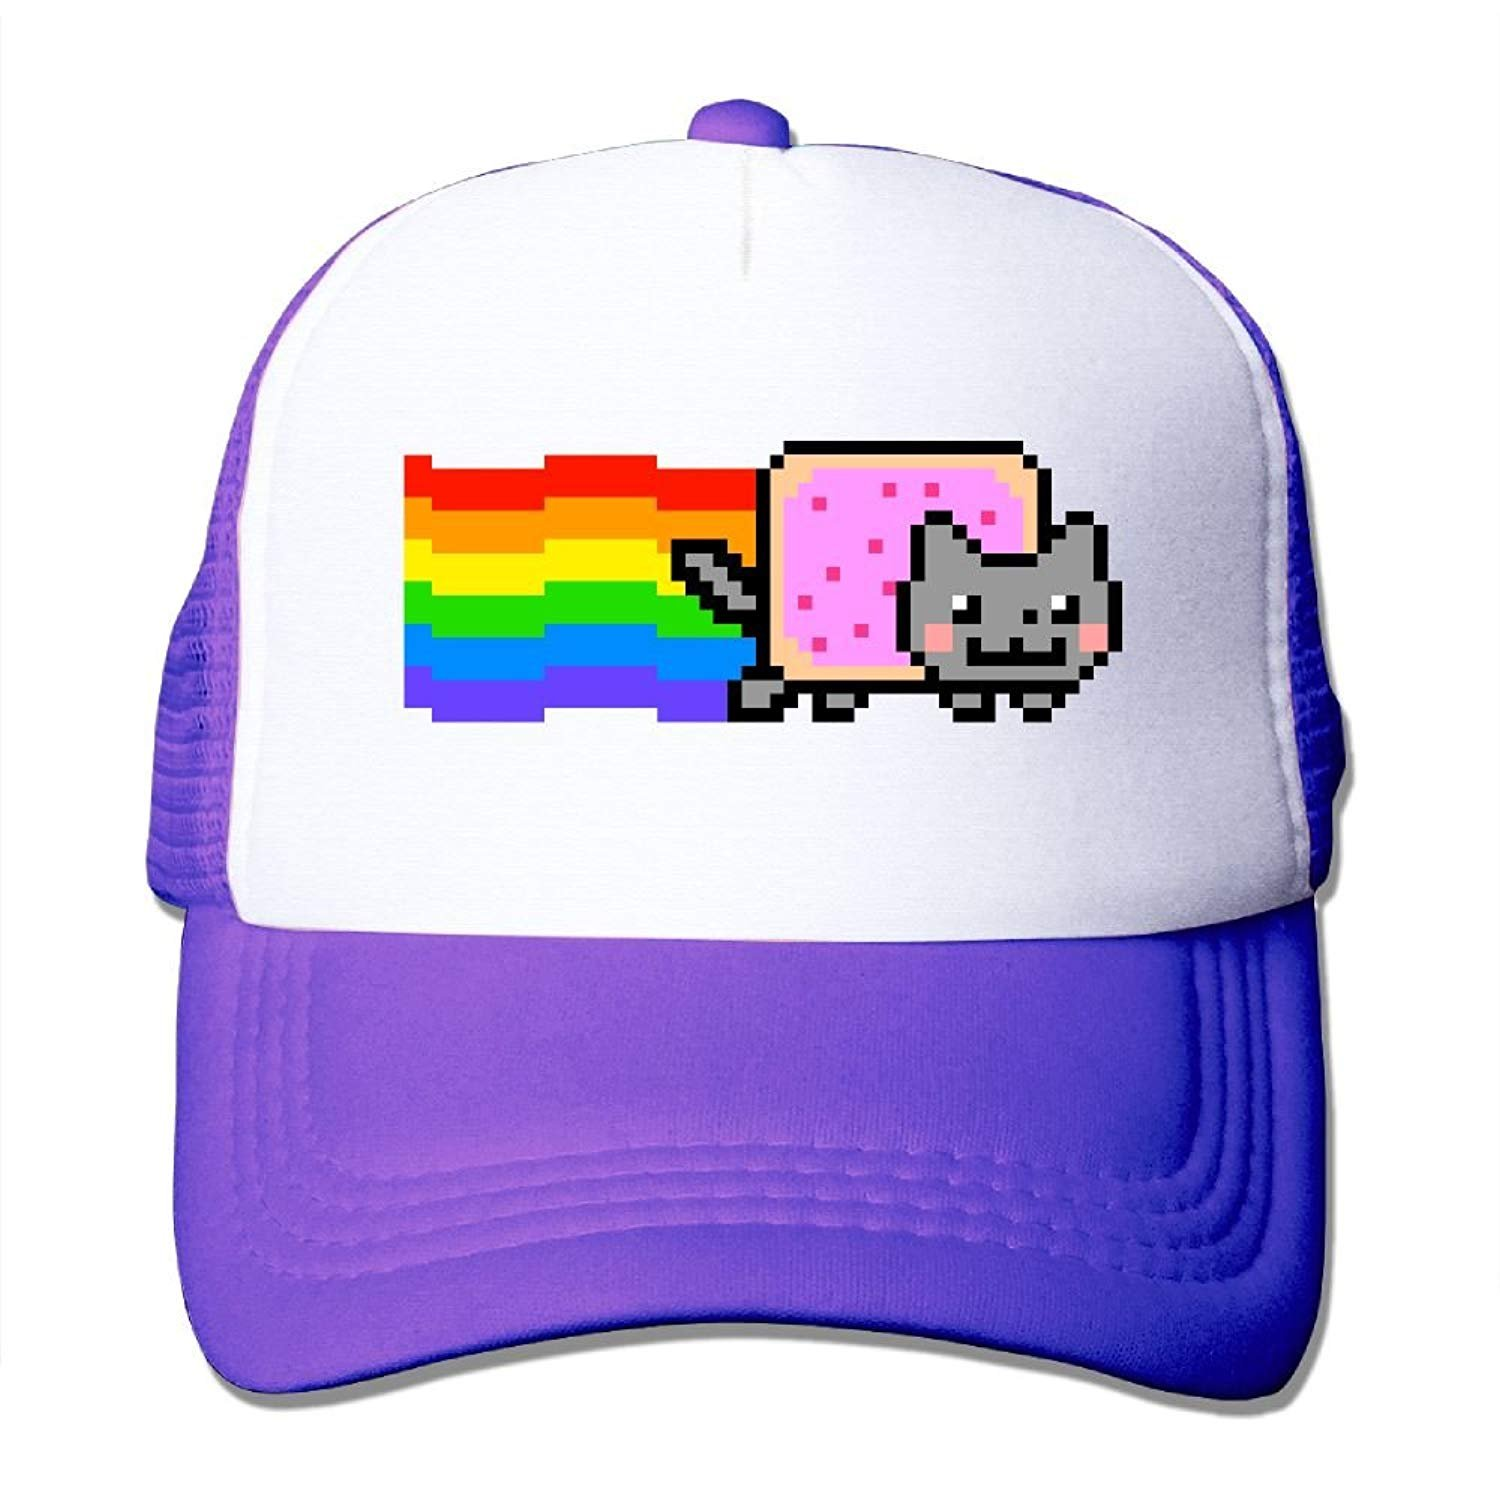 xcvnxtgndx Nyan Cat Rainbow PNG Mesh Trucker Caps/Hats Adjustable ...